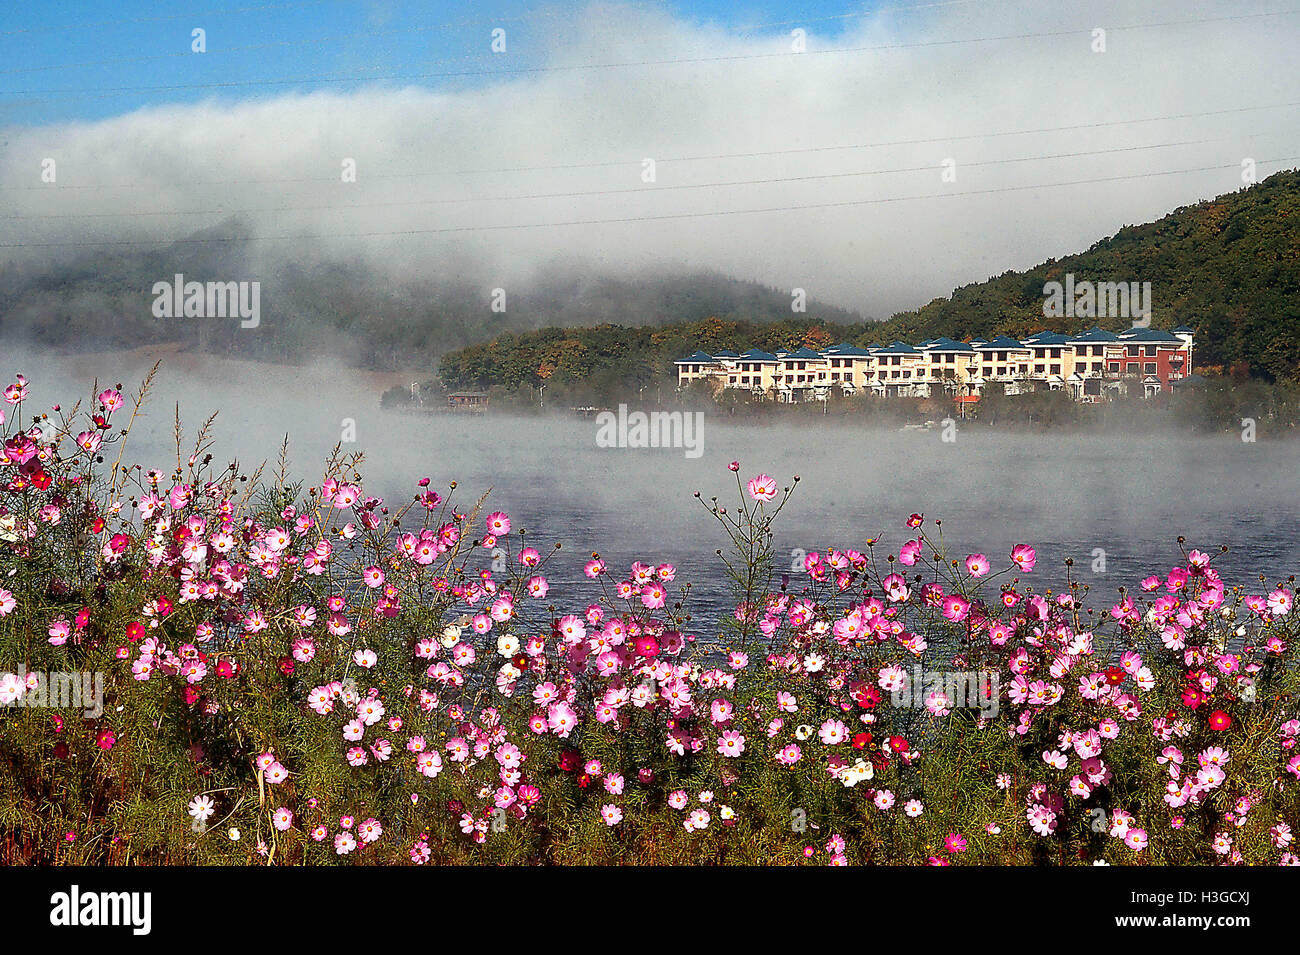 Beijing, China. 29th Sep, 2016. Photo taken on Sept. 29, 2016 shows the scenery of a hot spring resort in Dunhua, - Stock Image